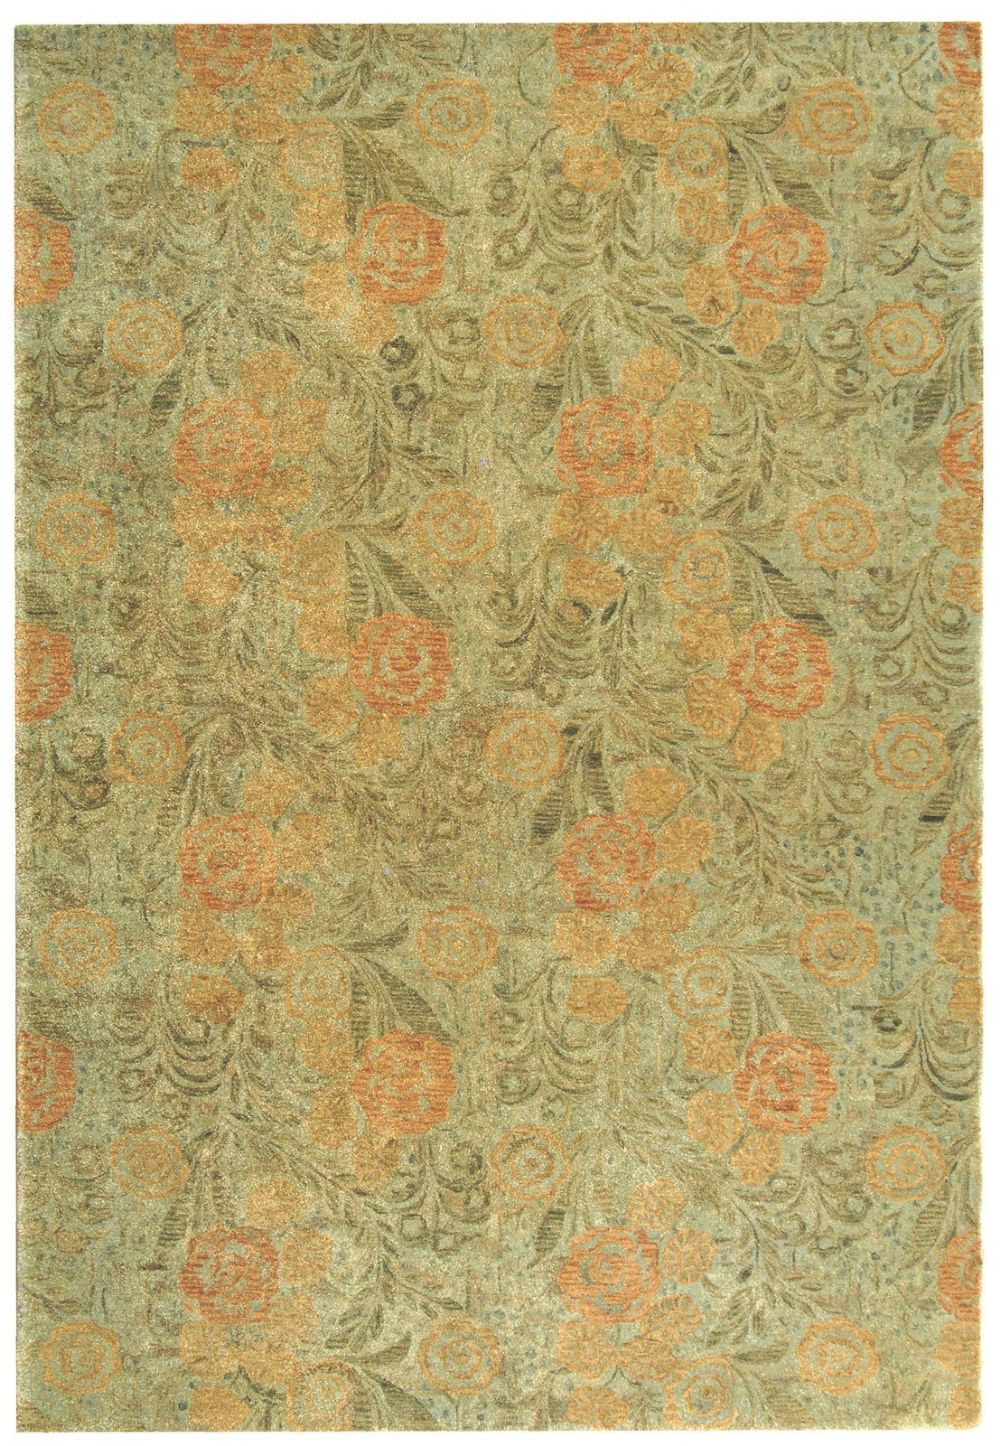 safavieh martha stewart country & floral area rug collection